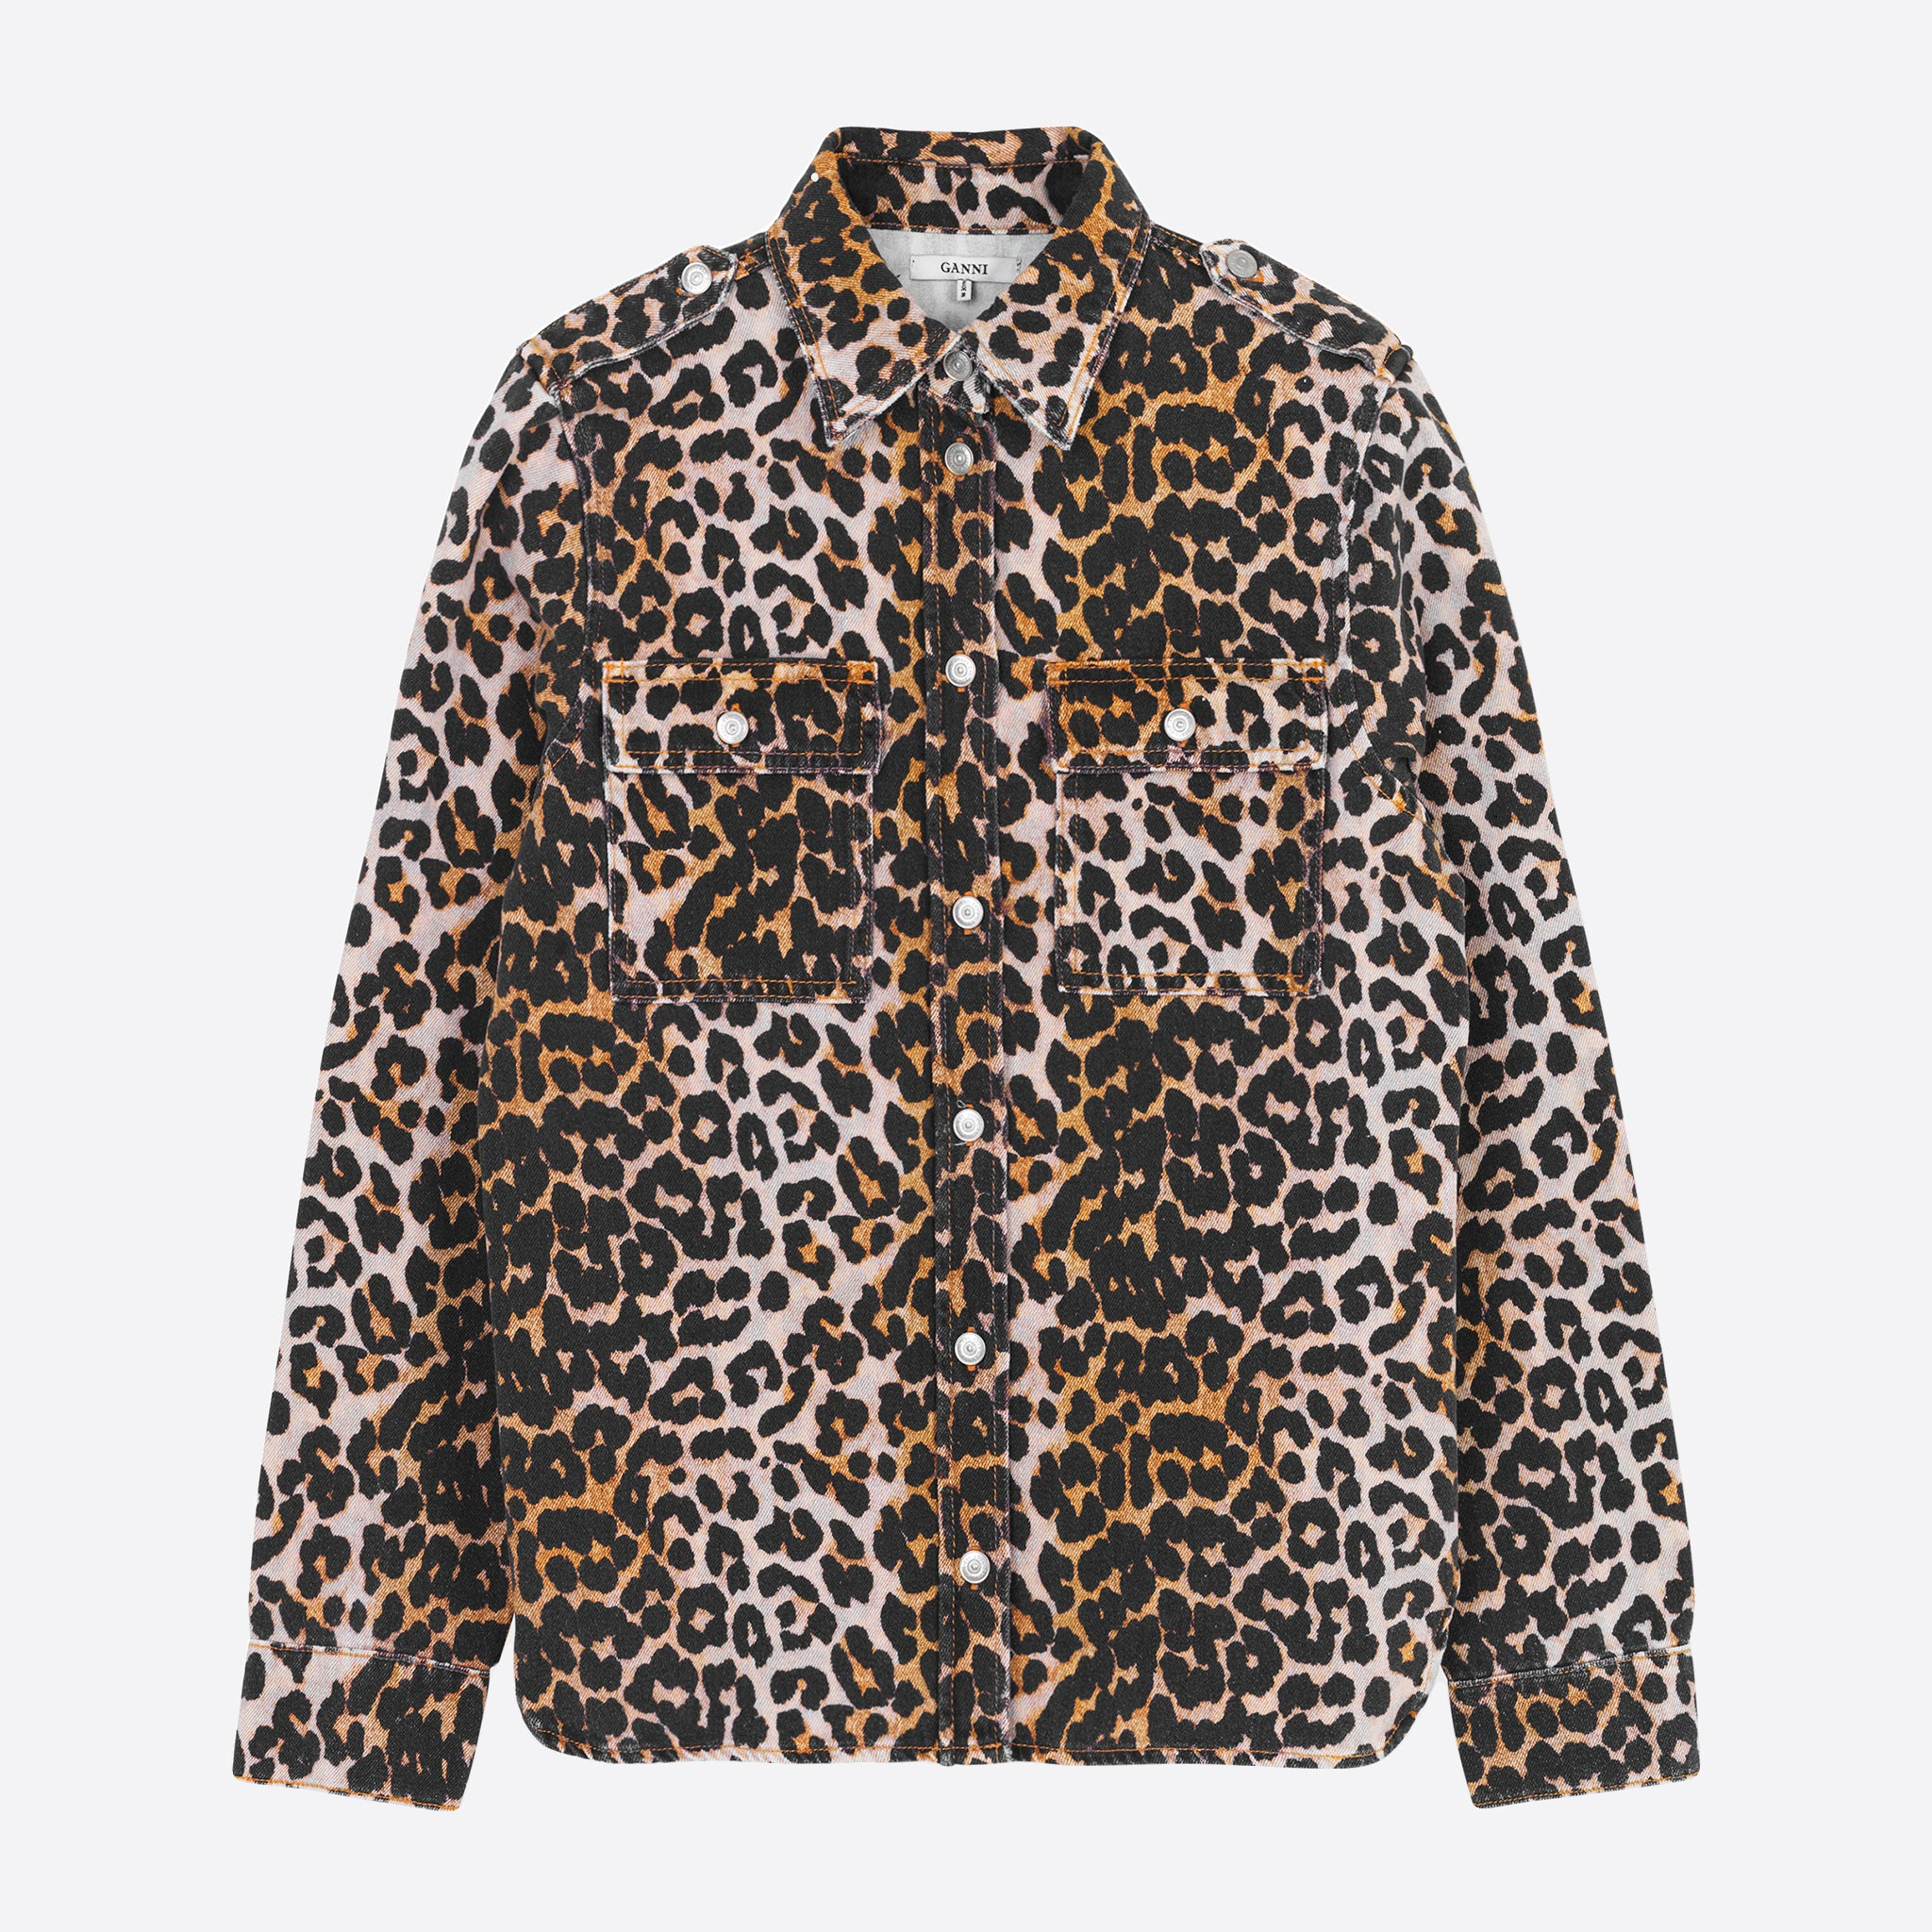 Ganni Printed Denim Utility Shirt in Leopard